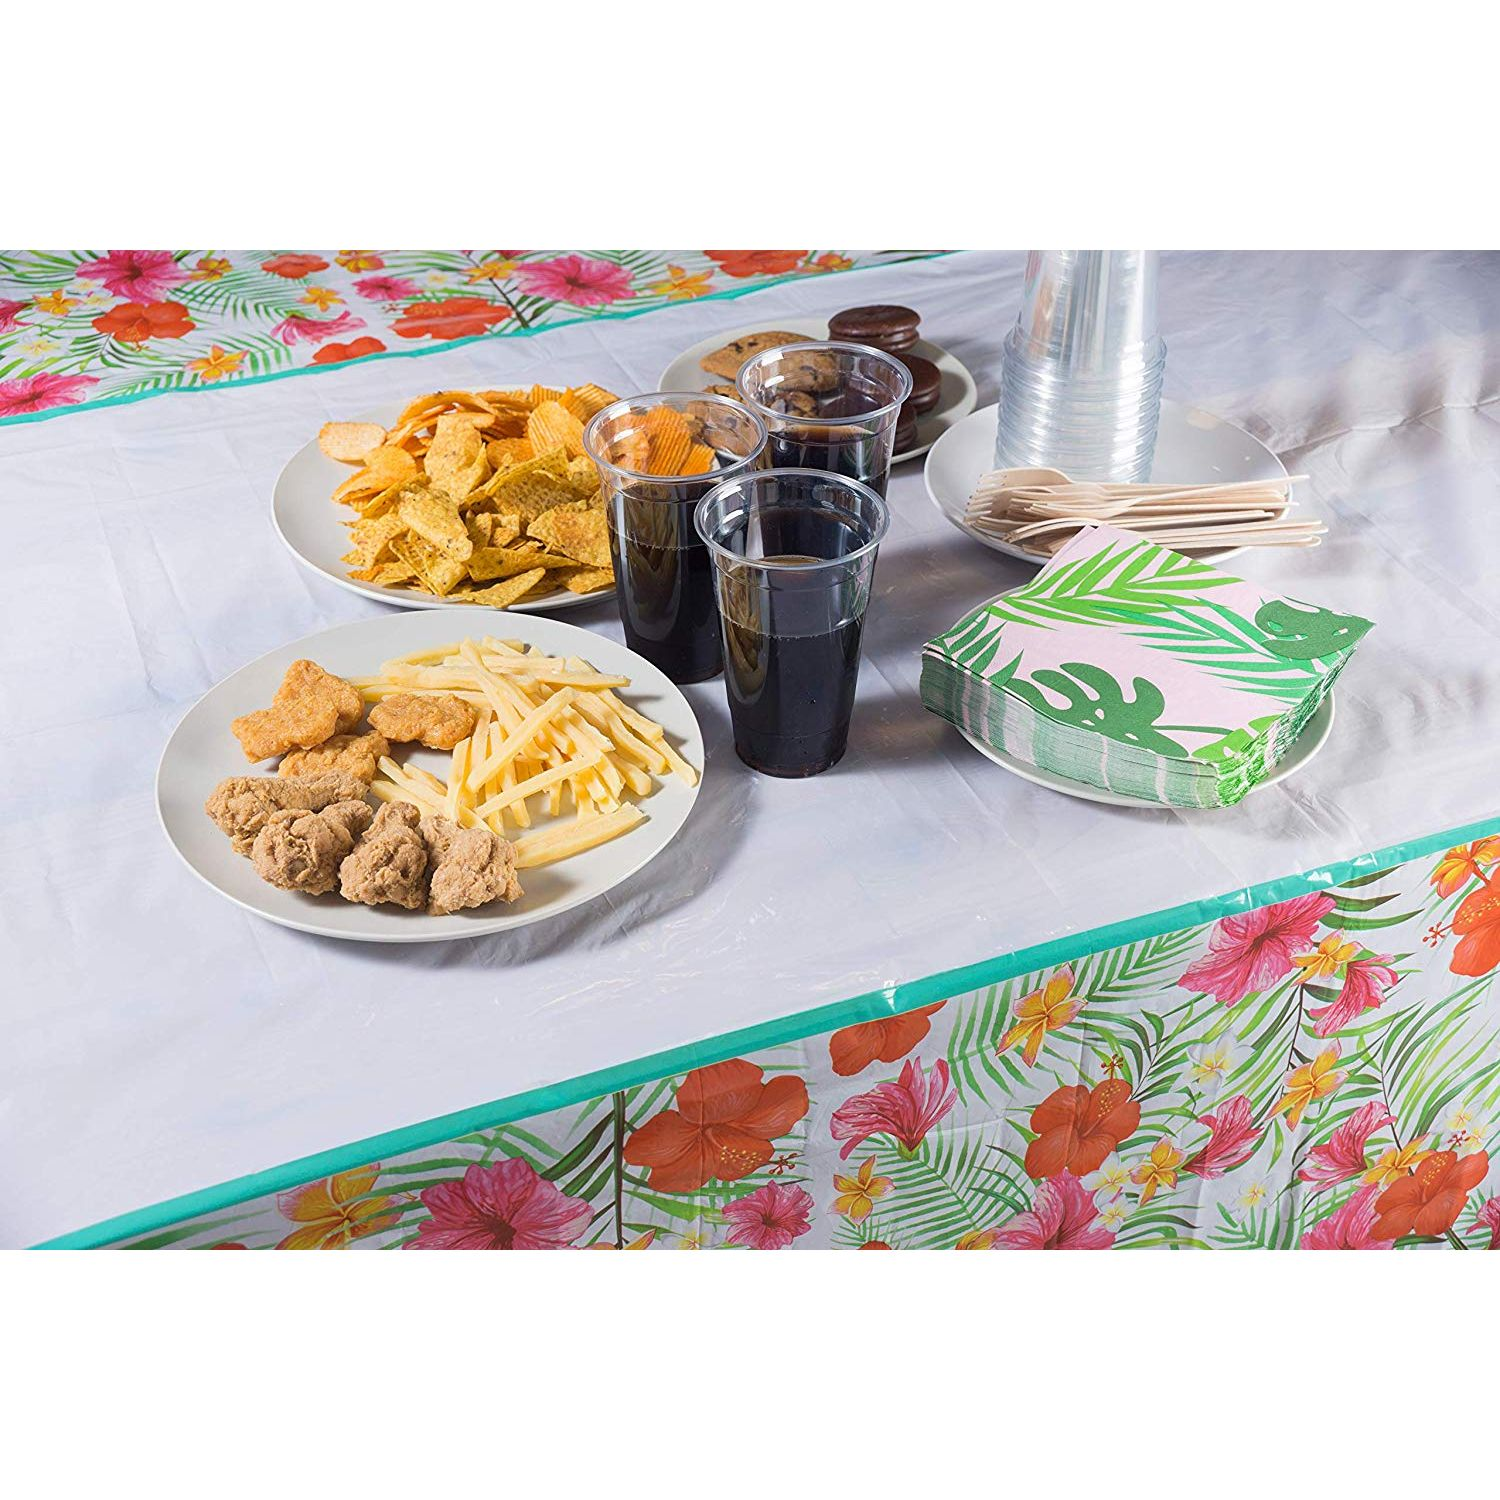 Aloha Tropical Palm Leaves Table Cloth Summer Beach Kids Birthday Cocktail Party Supplies Hawaiian Luau Tablecloths for Party Decoration 2 Pack Hawaii Disposable Plastic Rectangular Table Covers